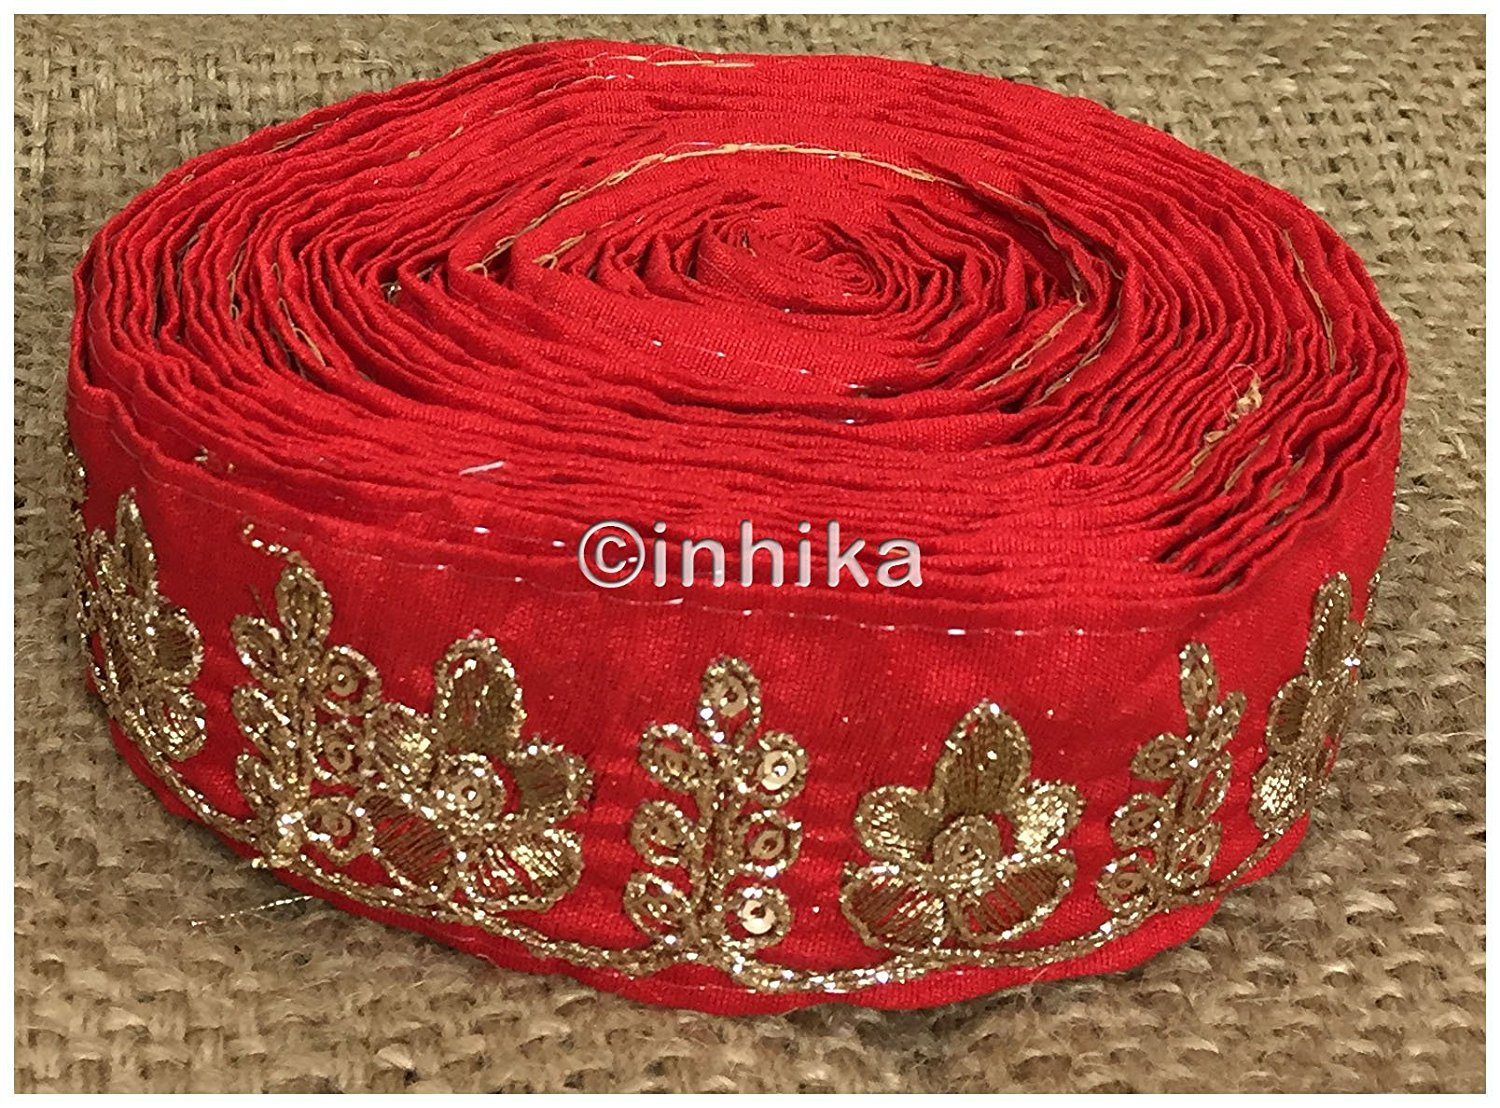 lace trim fabric fancy saree border lace for sale Red, Embroidery, 2 Inch Wide material Cotton Mix, Dupion